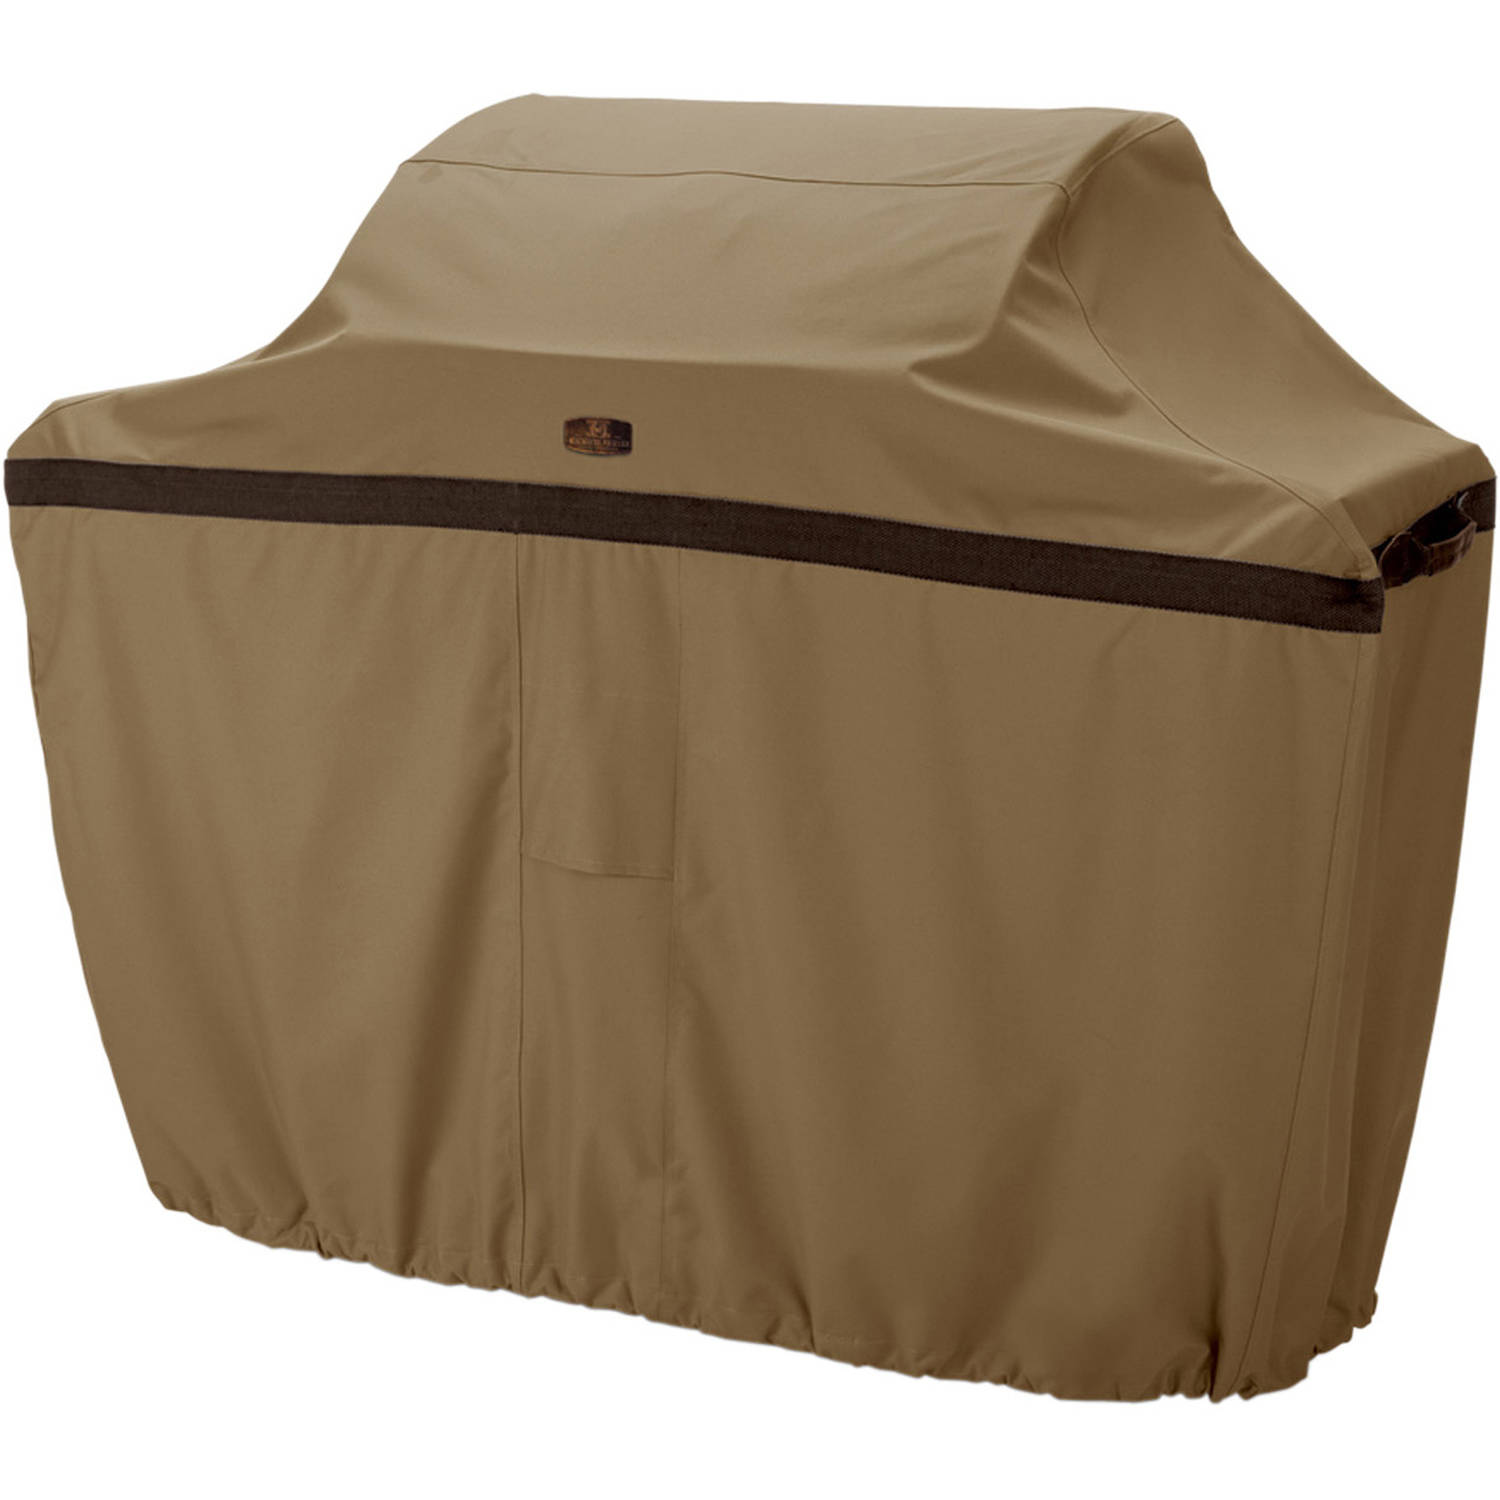 "Classic Accessories Hickory Barbecue BBQ Grill Patio Storage Cover, Up to 58"" Wide, Medium"